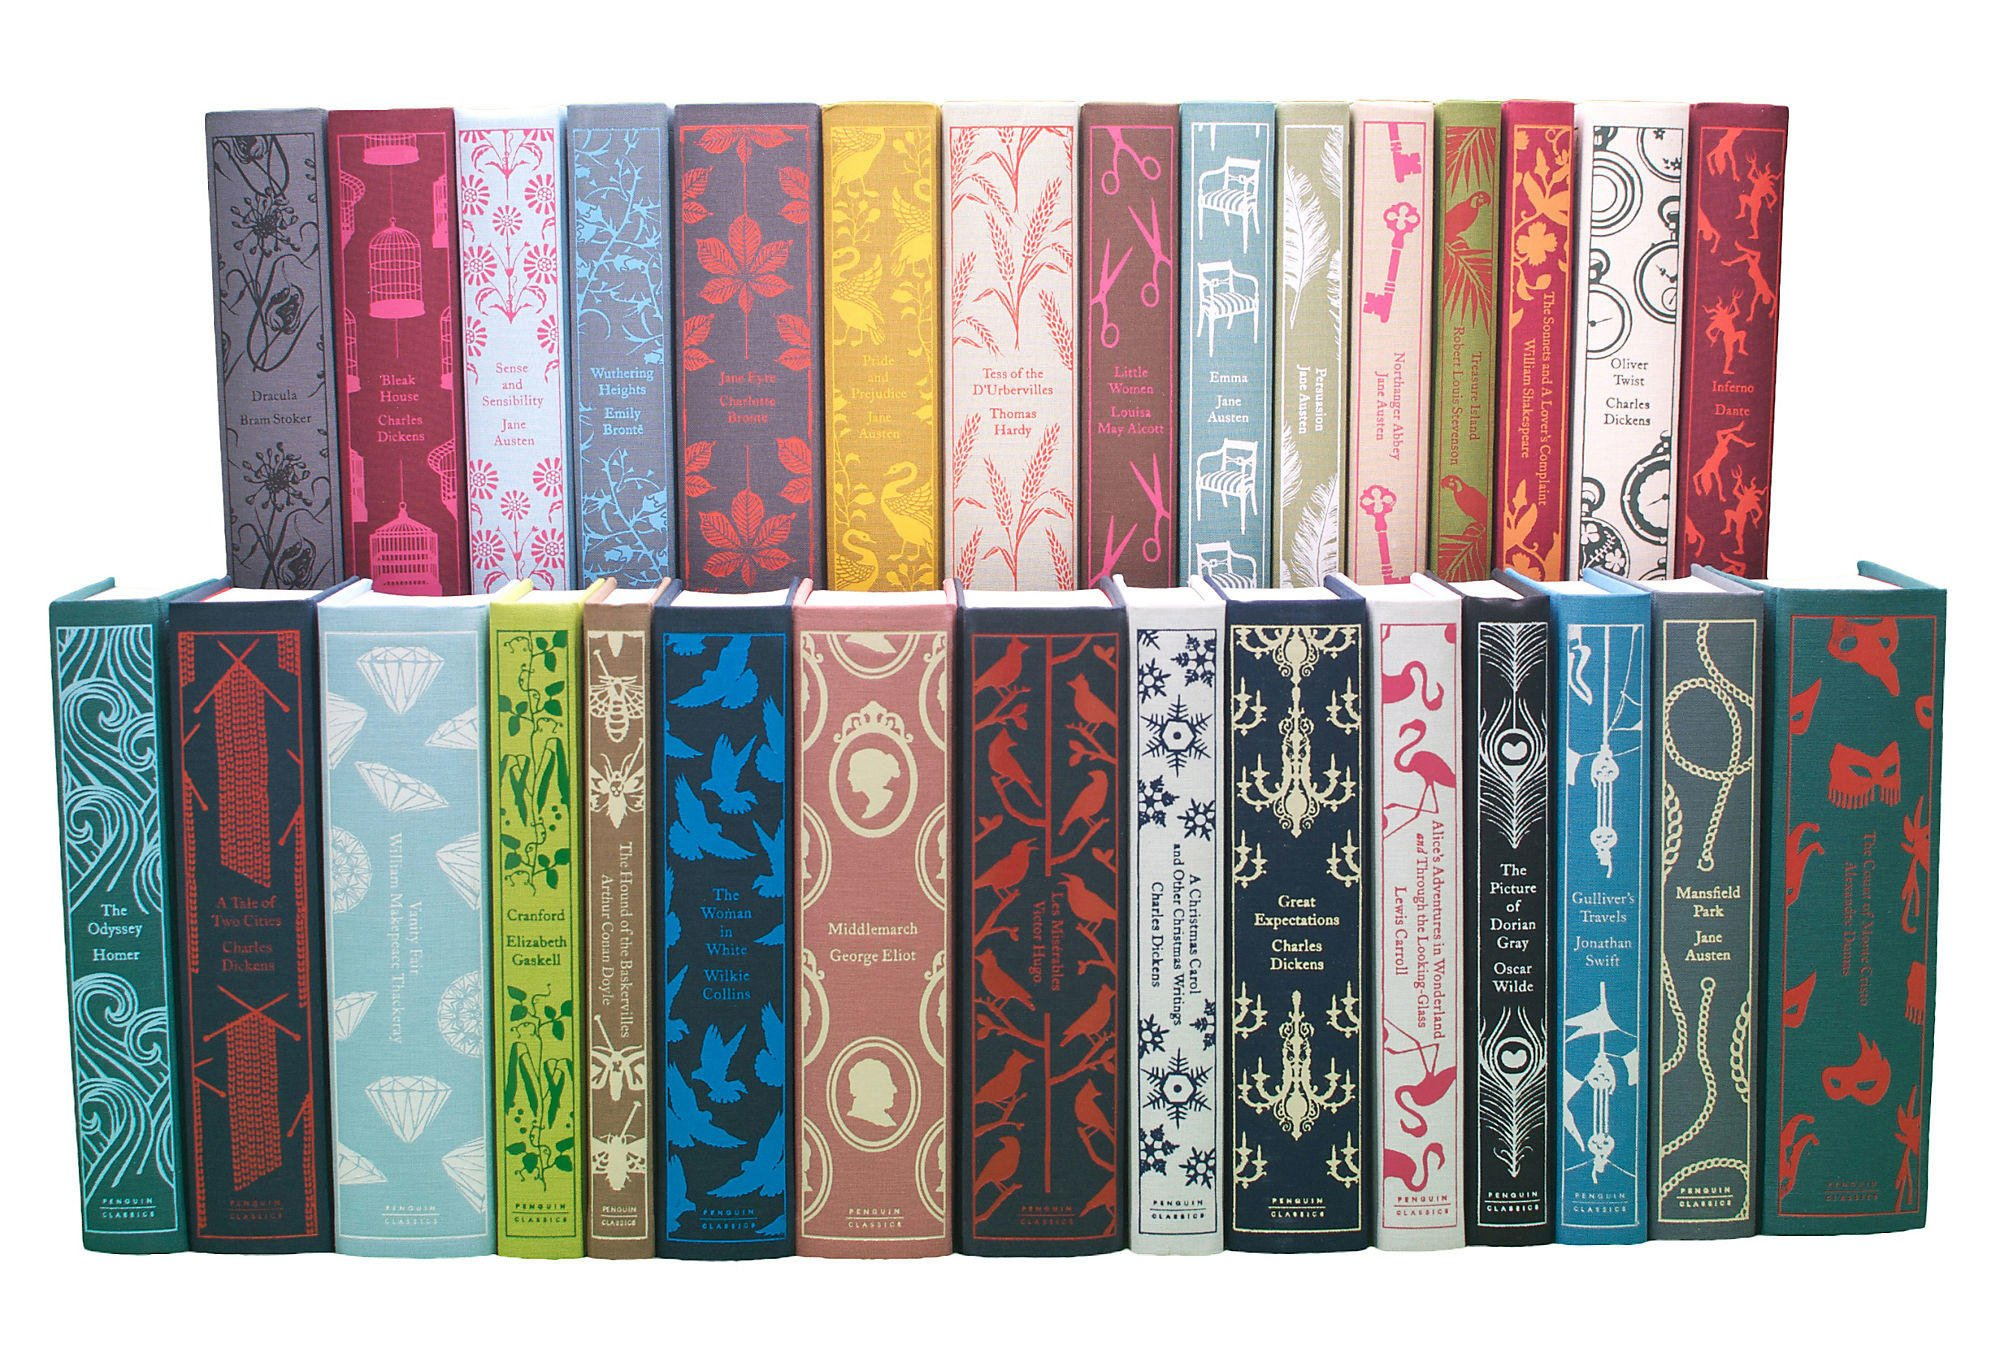 Penguin Book Cover Gifts : Penguin classics books set of from one kings lane